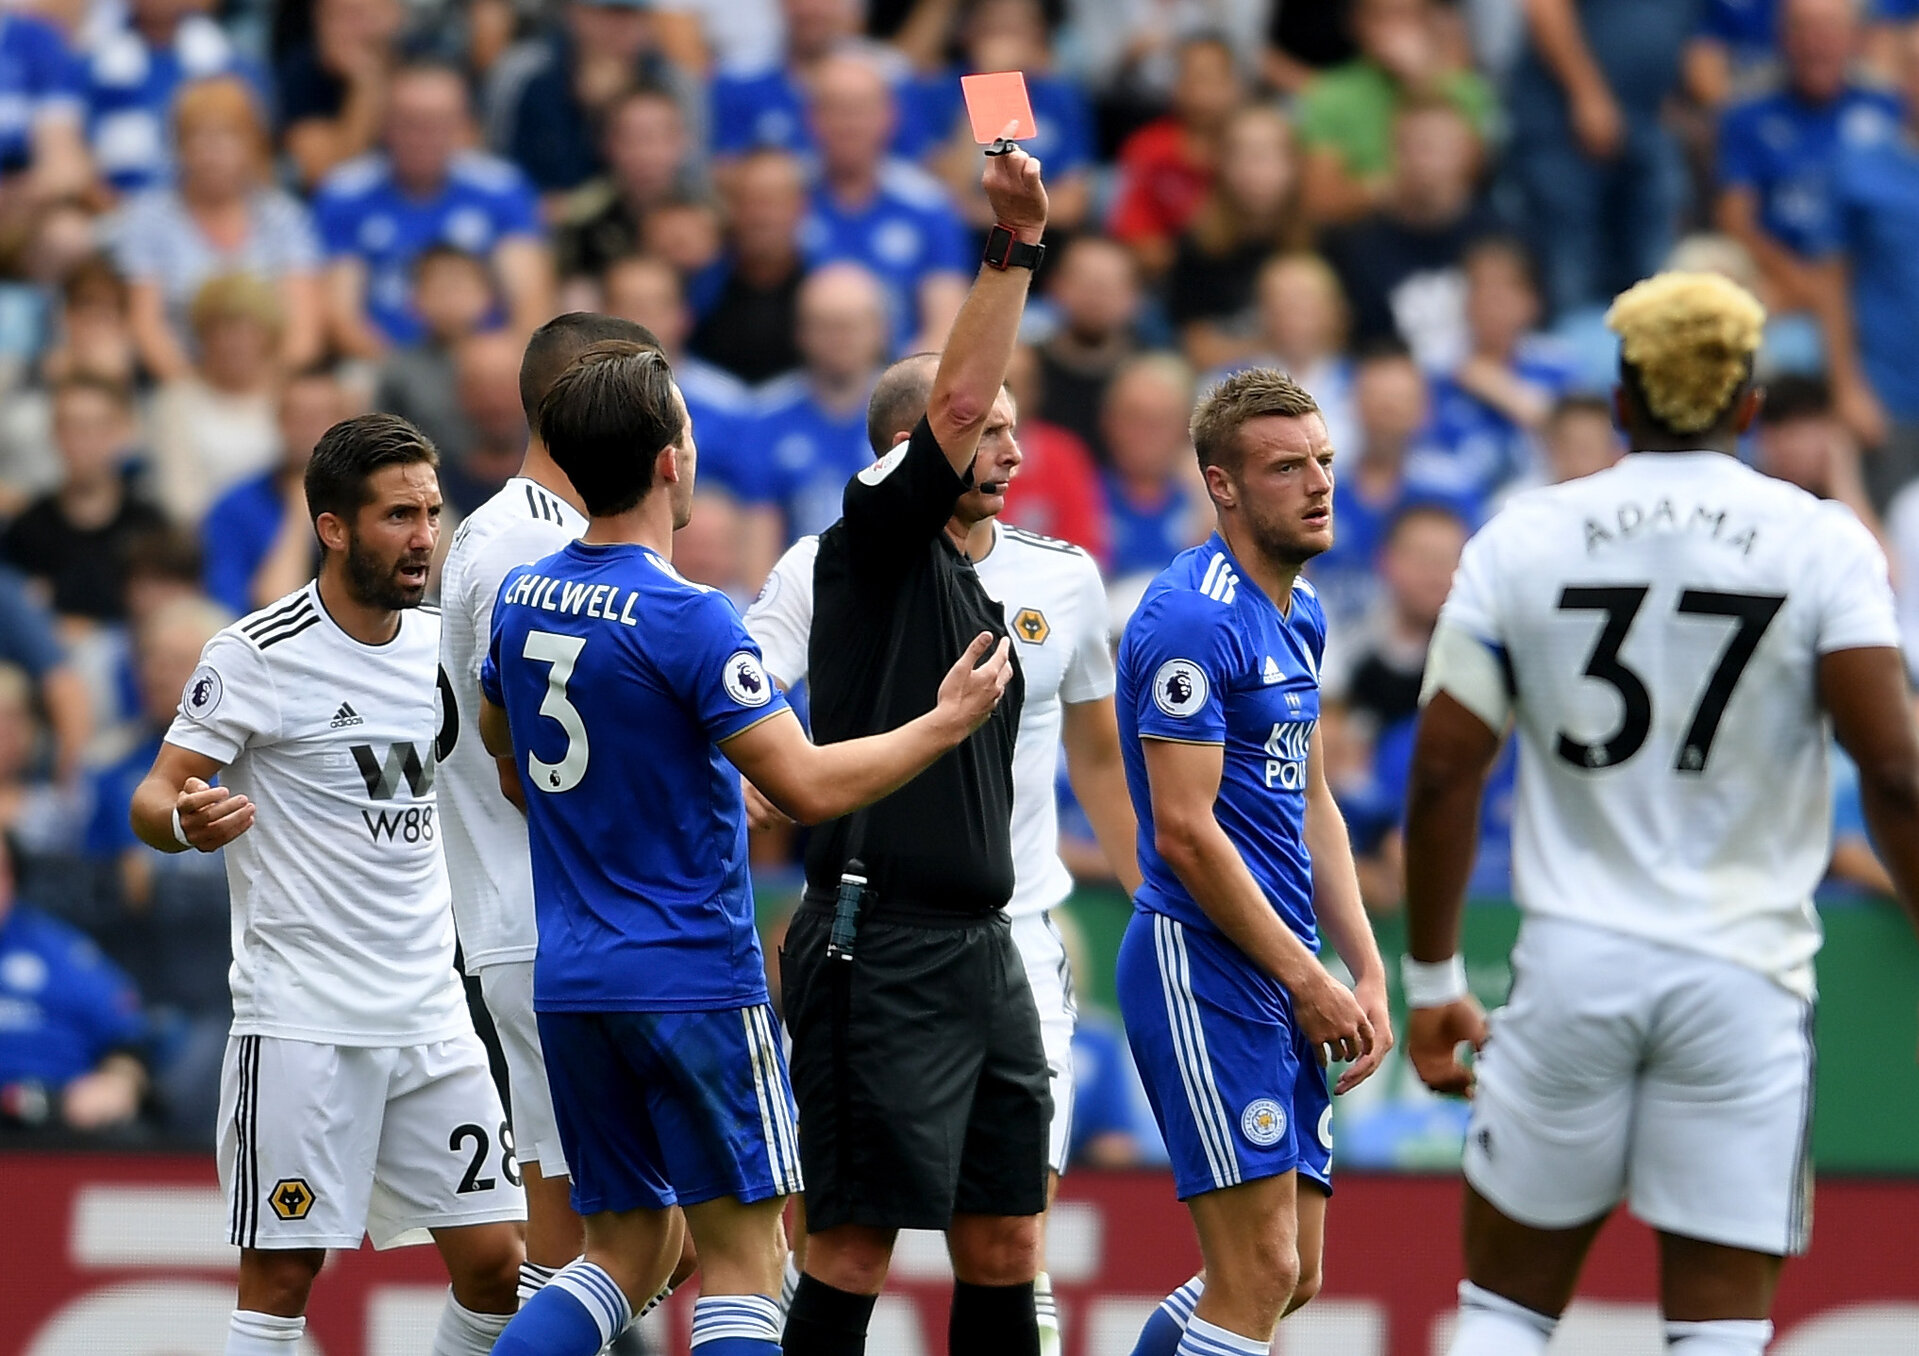 LEICESTER, ENGLAND - AUGUST 18:  Jamie Vardy of Leicester City is sent off by referee Mike Dean during the Premier League match between Leicester City and Wolverhampton Wanderers at The King Power Stadium on August 18, 2018 in Leicester, United Kingdom.  (Photo by Ross Kinnaird/Getty Images)